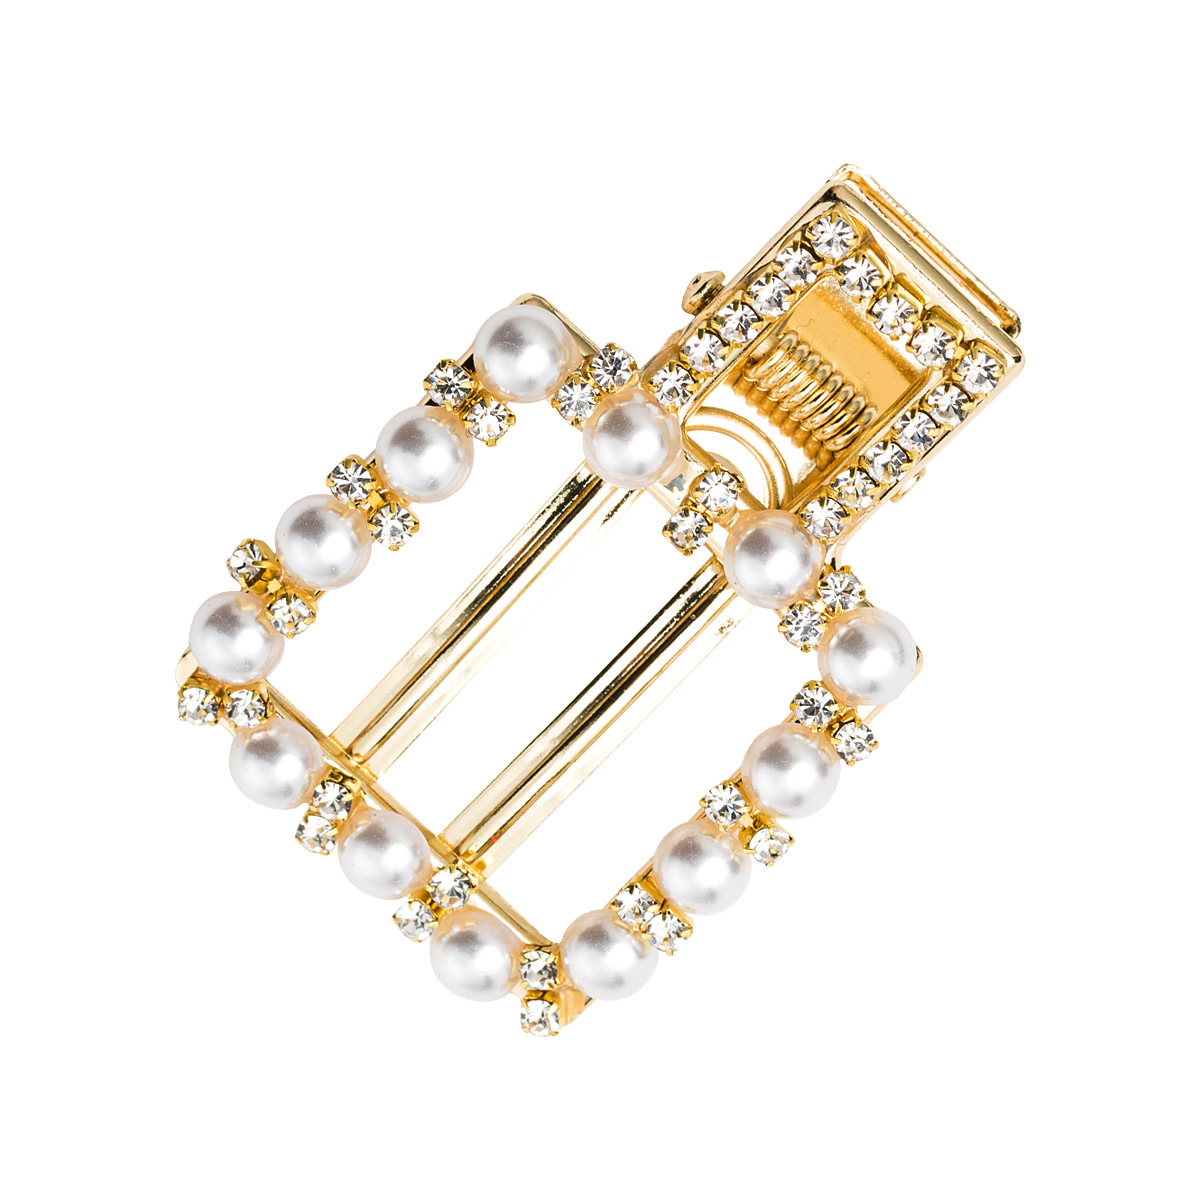 Alloy Fashion Geometric Hair accessories  (Alloy) NHJE2327-Alloy